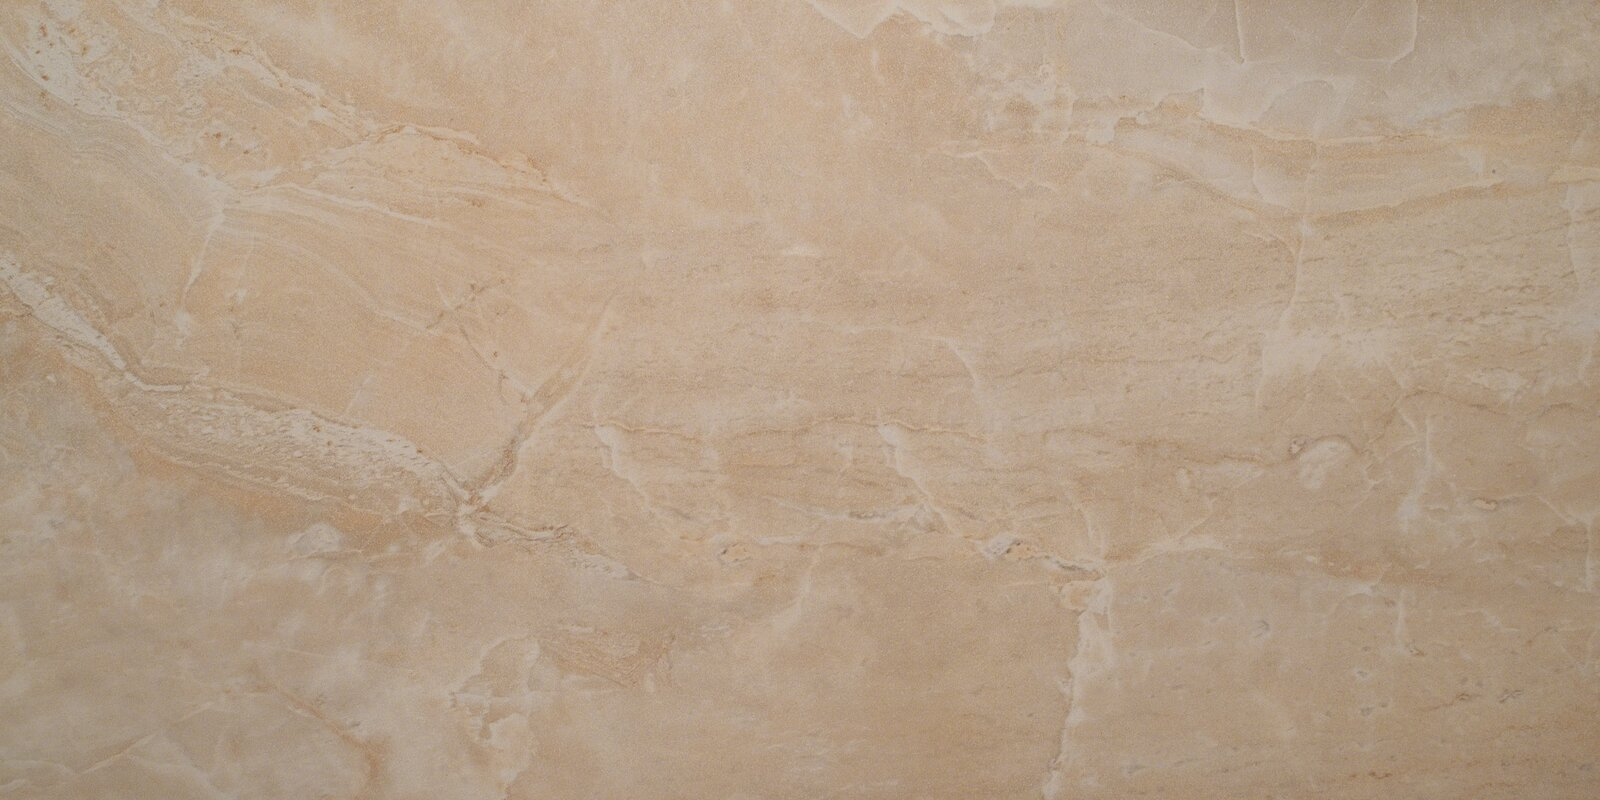 Msi pietra onyx 16 x 32 porcelain field tile in beige reviews pietra onyx 16 x 32 porcelain field tile dailygadgetfo Choice Image